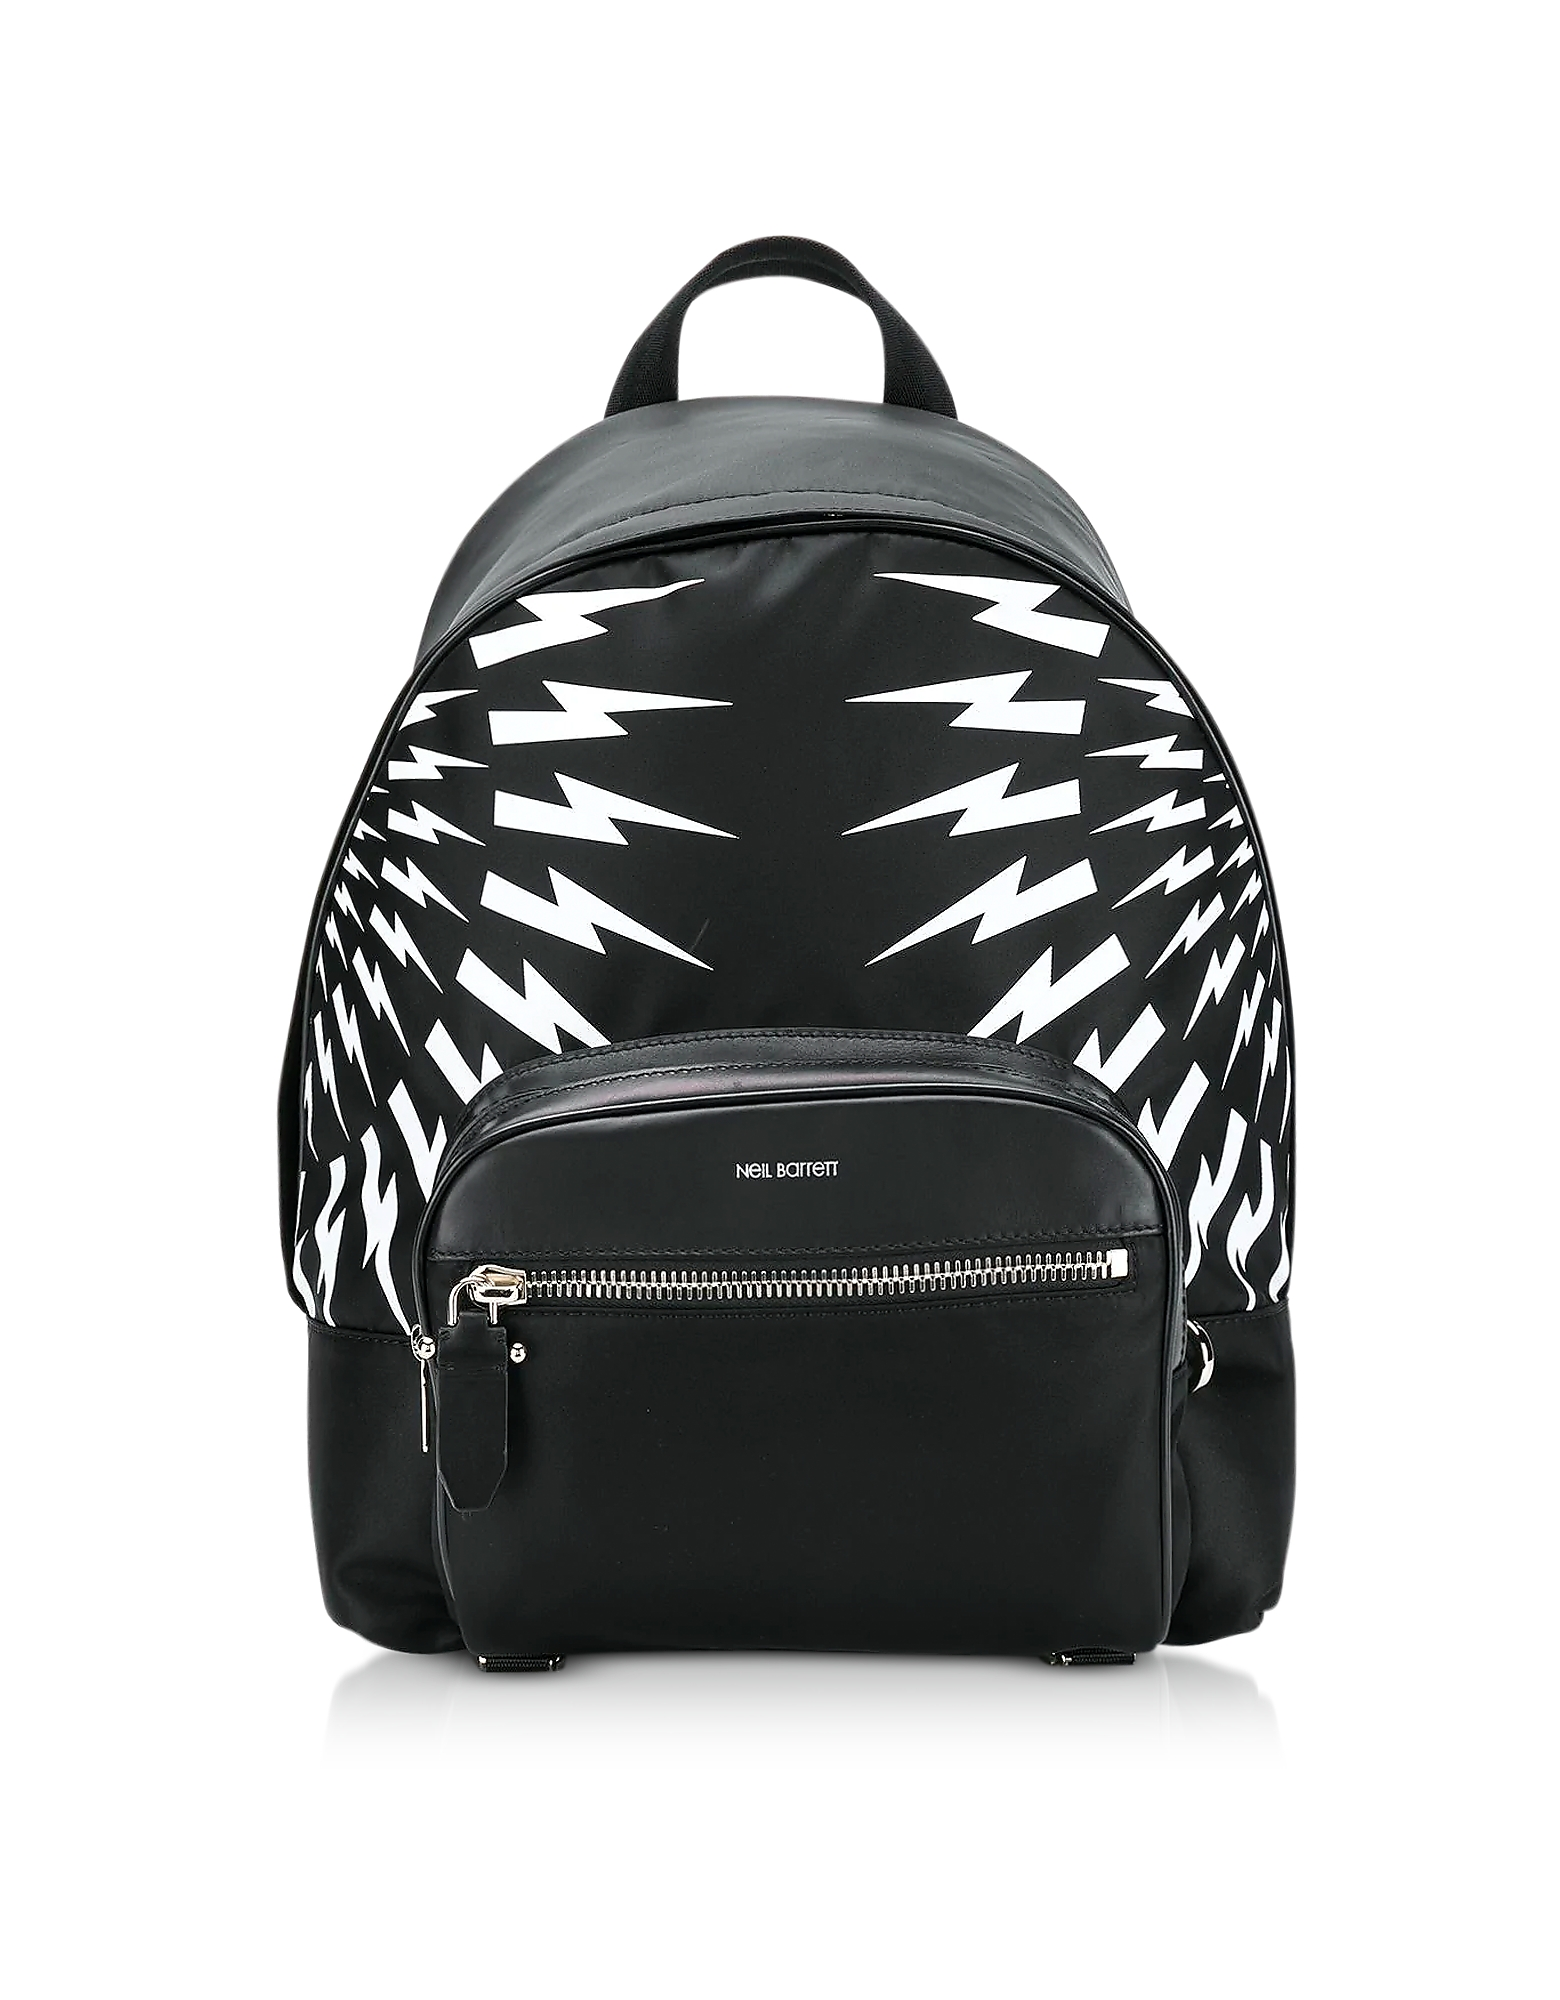 Thunderbolt Classic Backpack. Thunderbolt Classic Backpack crafted in nylon with leather detail and thunderbolt graphic, has the designer&